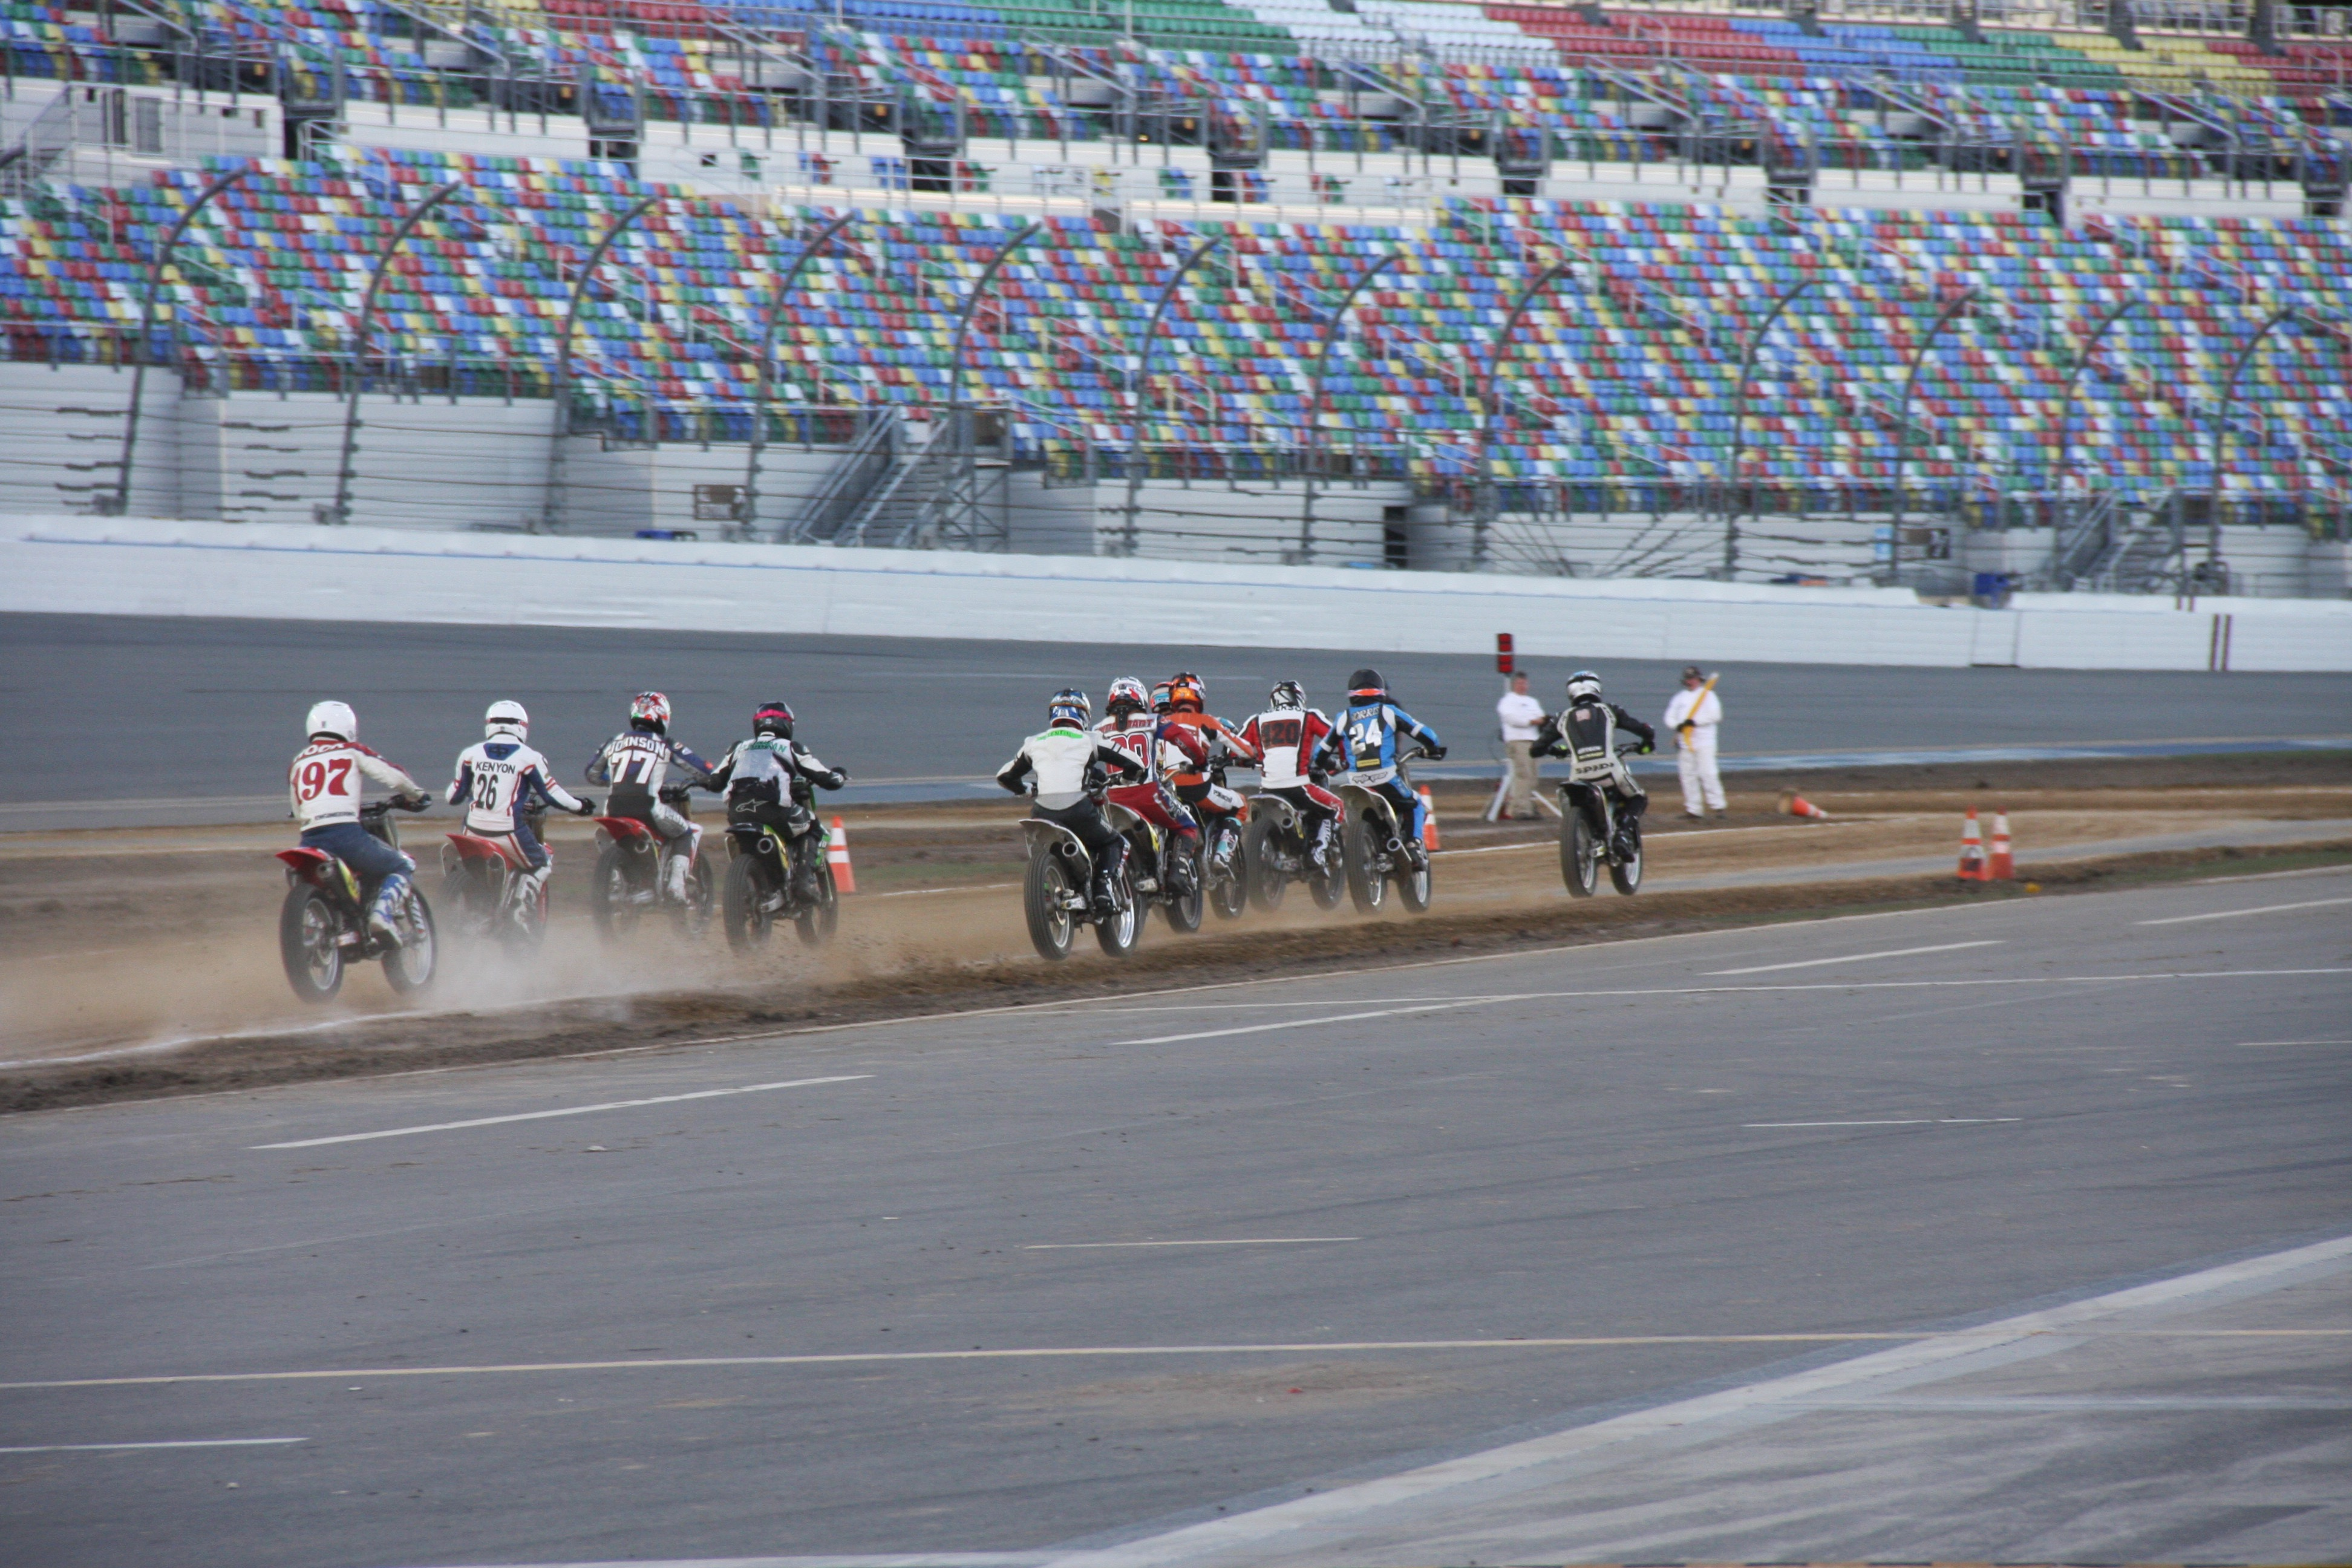 Indian Motorcycle: Making Legends on the Track!